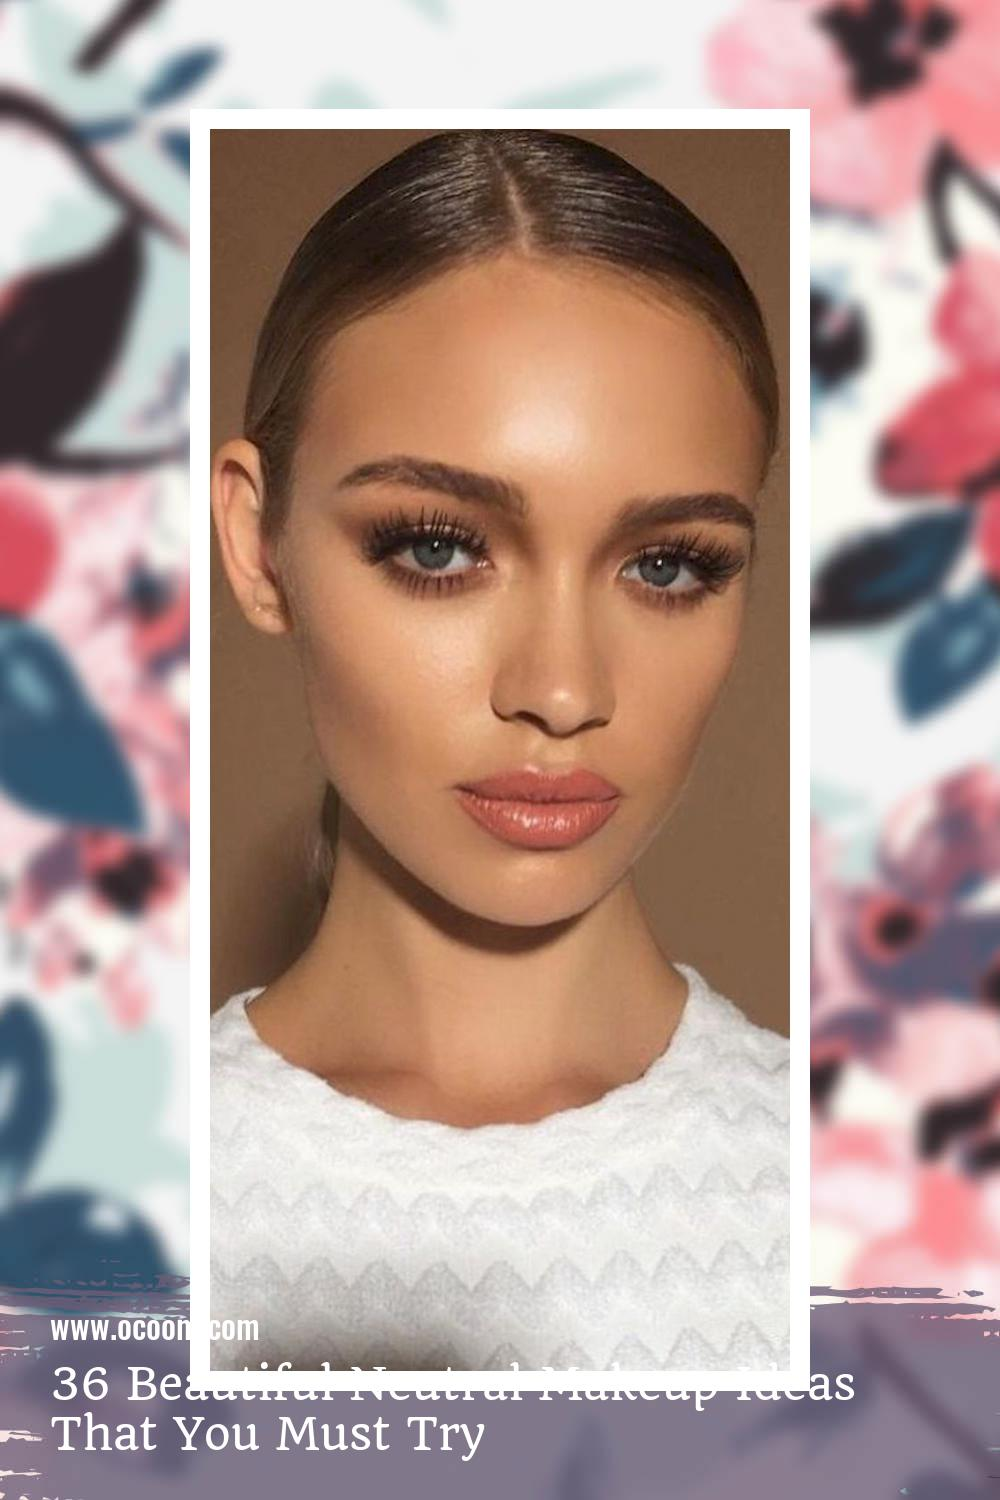 36 Beautiful Neutral Makeup Ideas That You Must Try 8